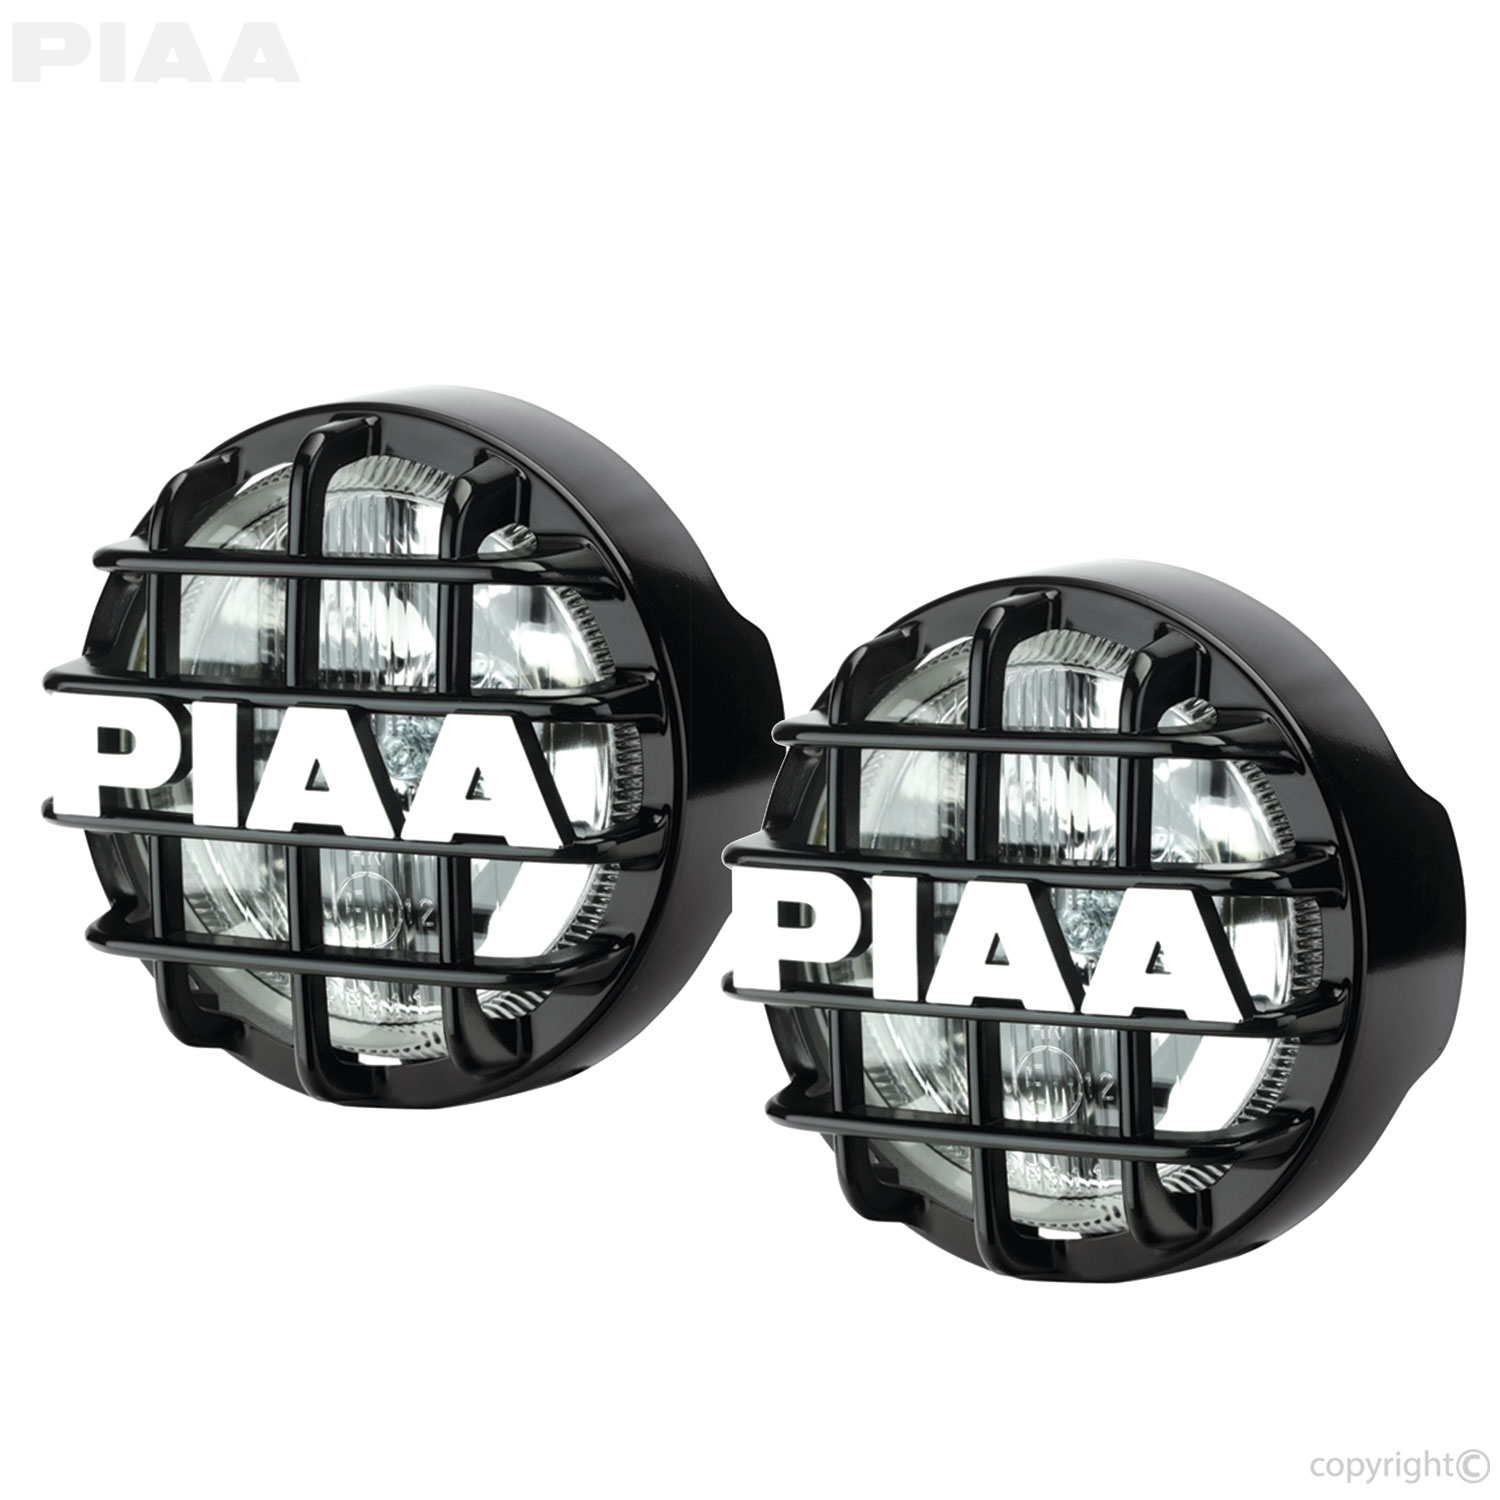 small resolution of piaa 510 super white driving lamp kit 05164 american autowire wiring harness 510 super white driving